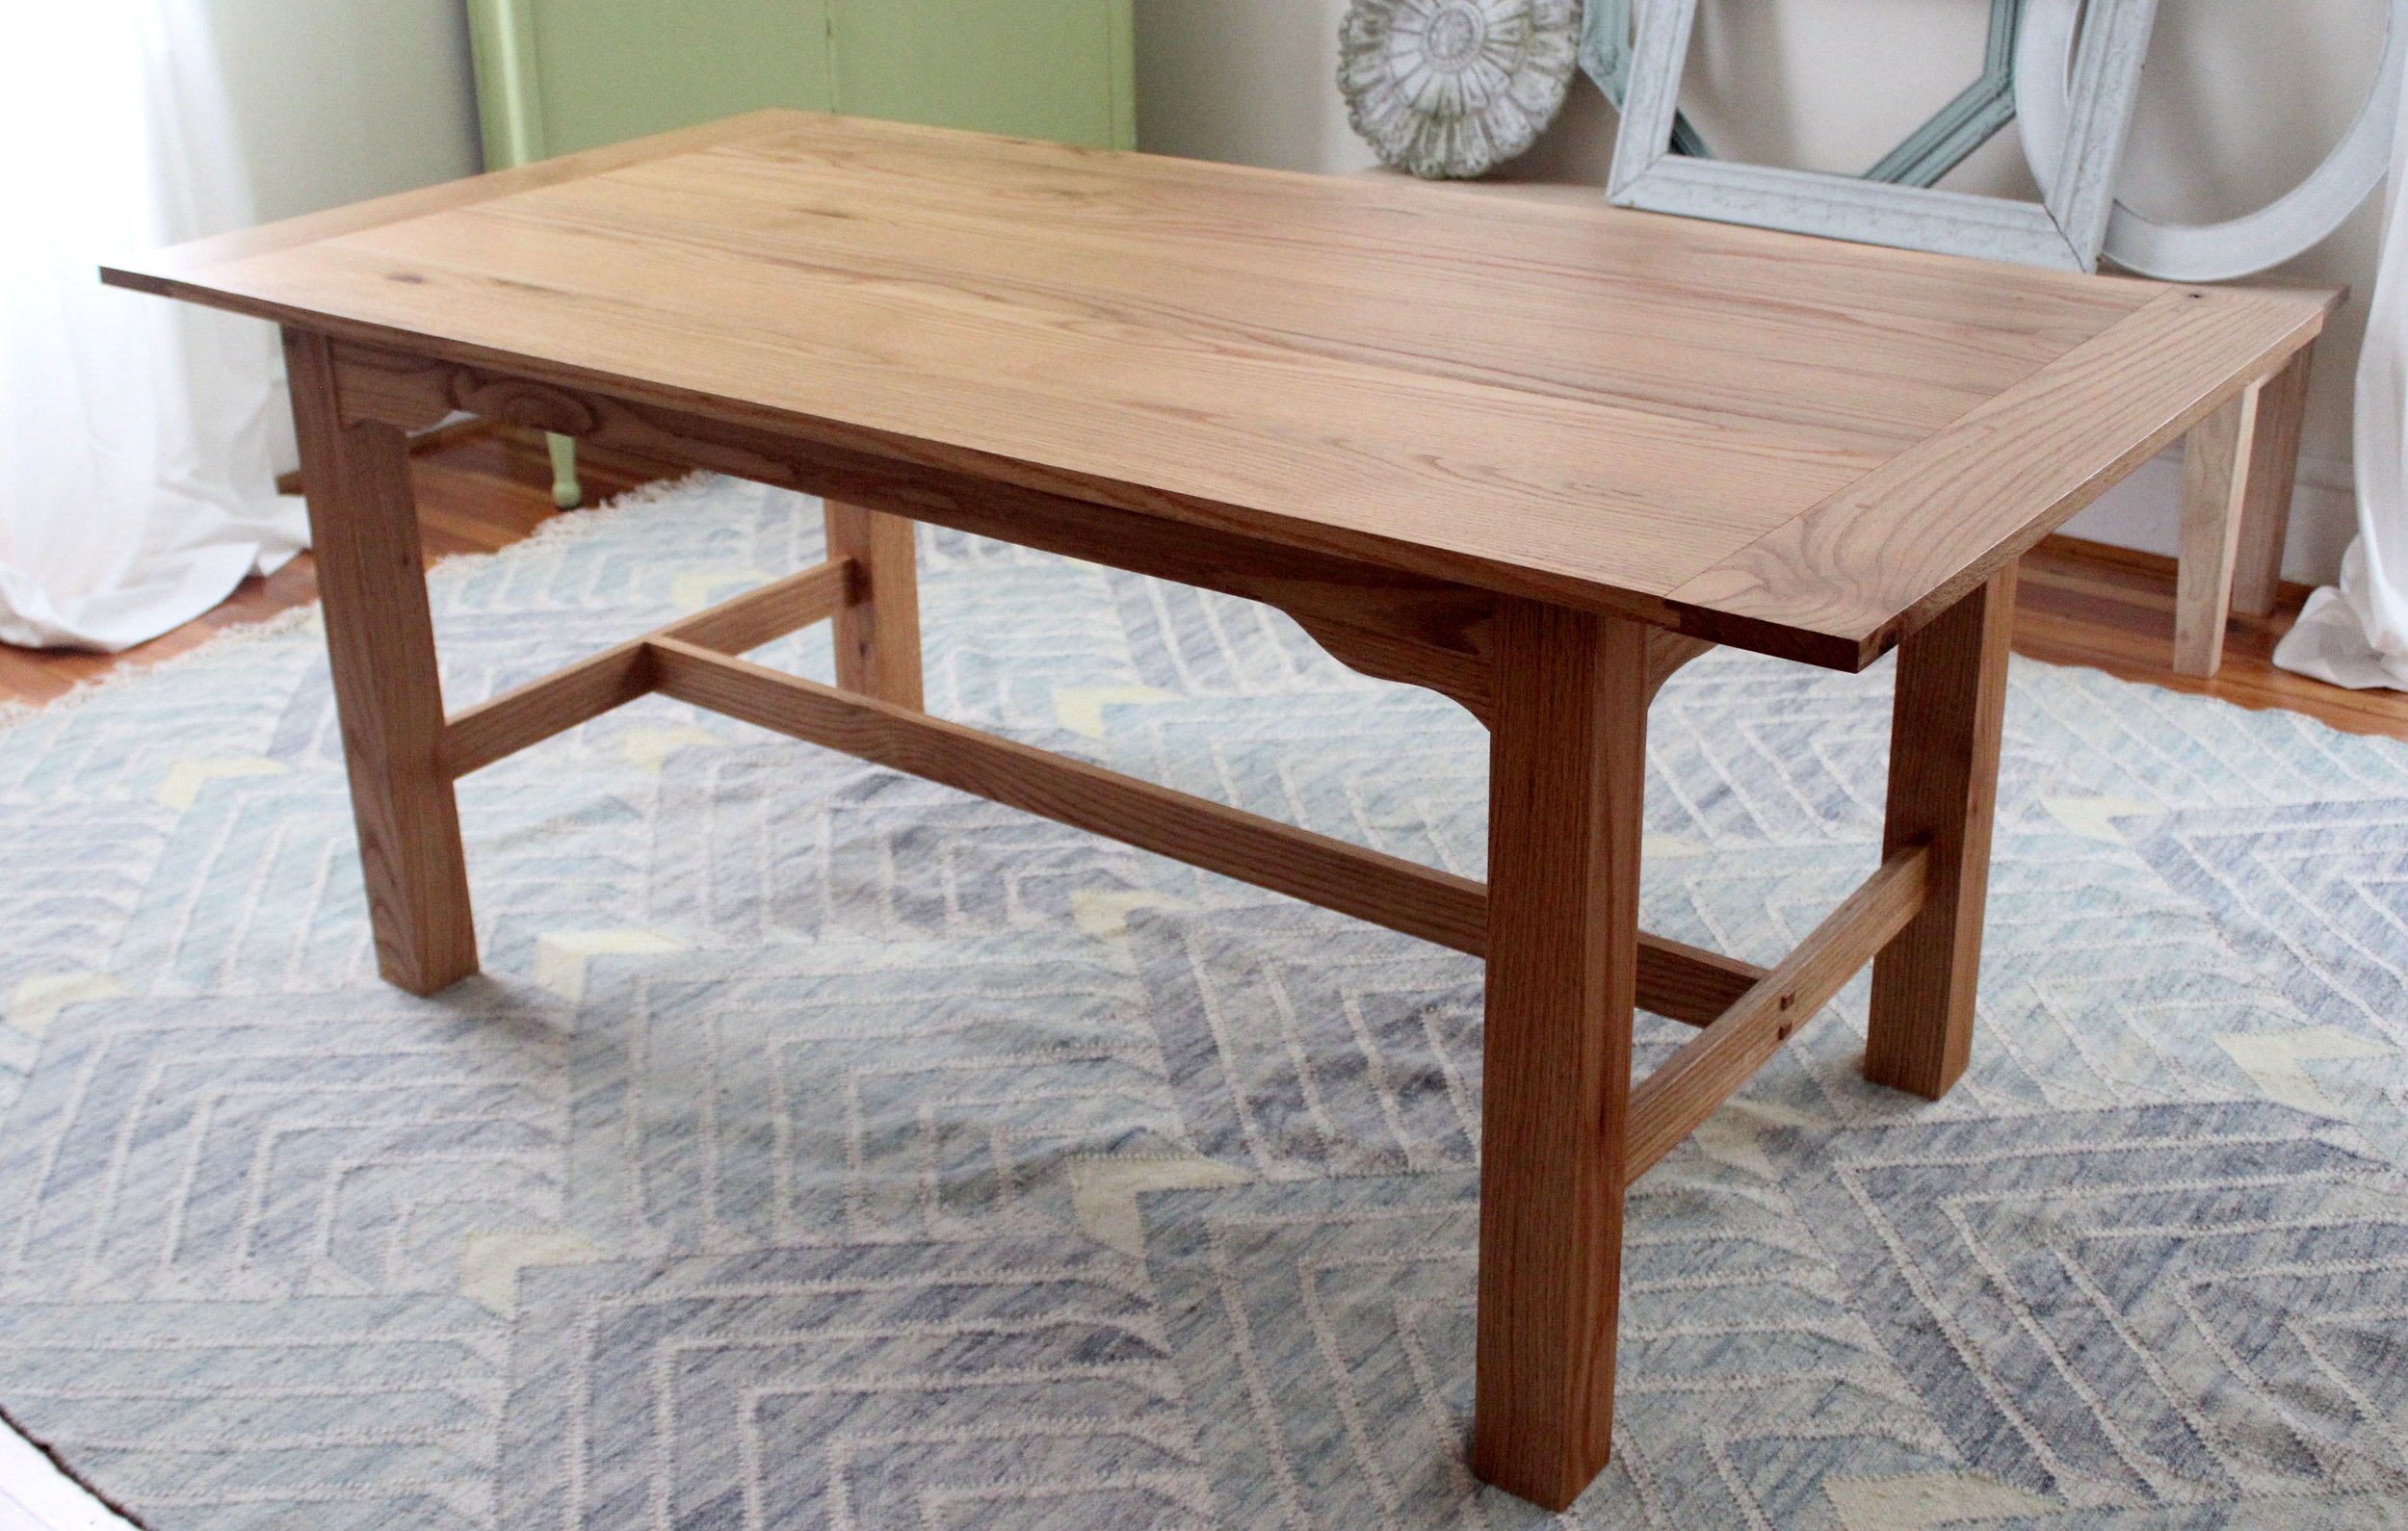 RED OAK KITCHEN TABLE